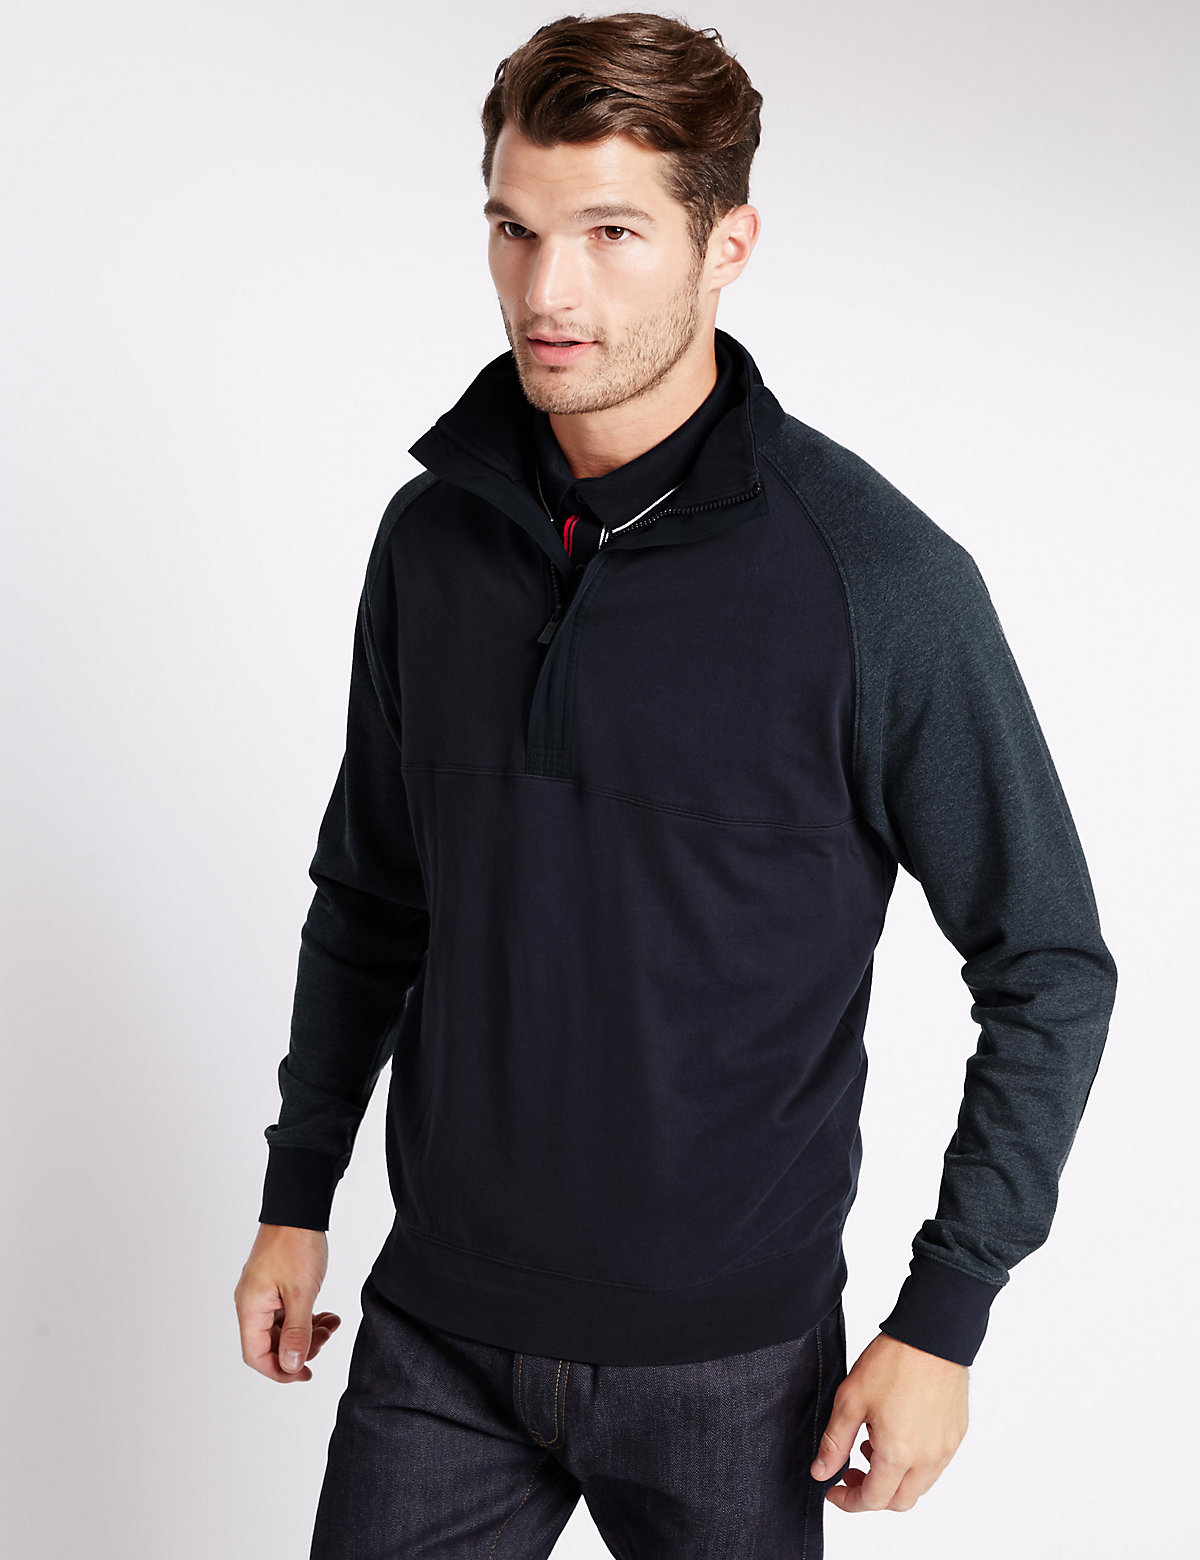 Image of Blue Harbour Pure Cotton Tailored Fit Sweatshirt